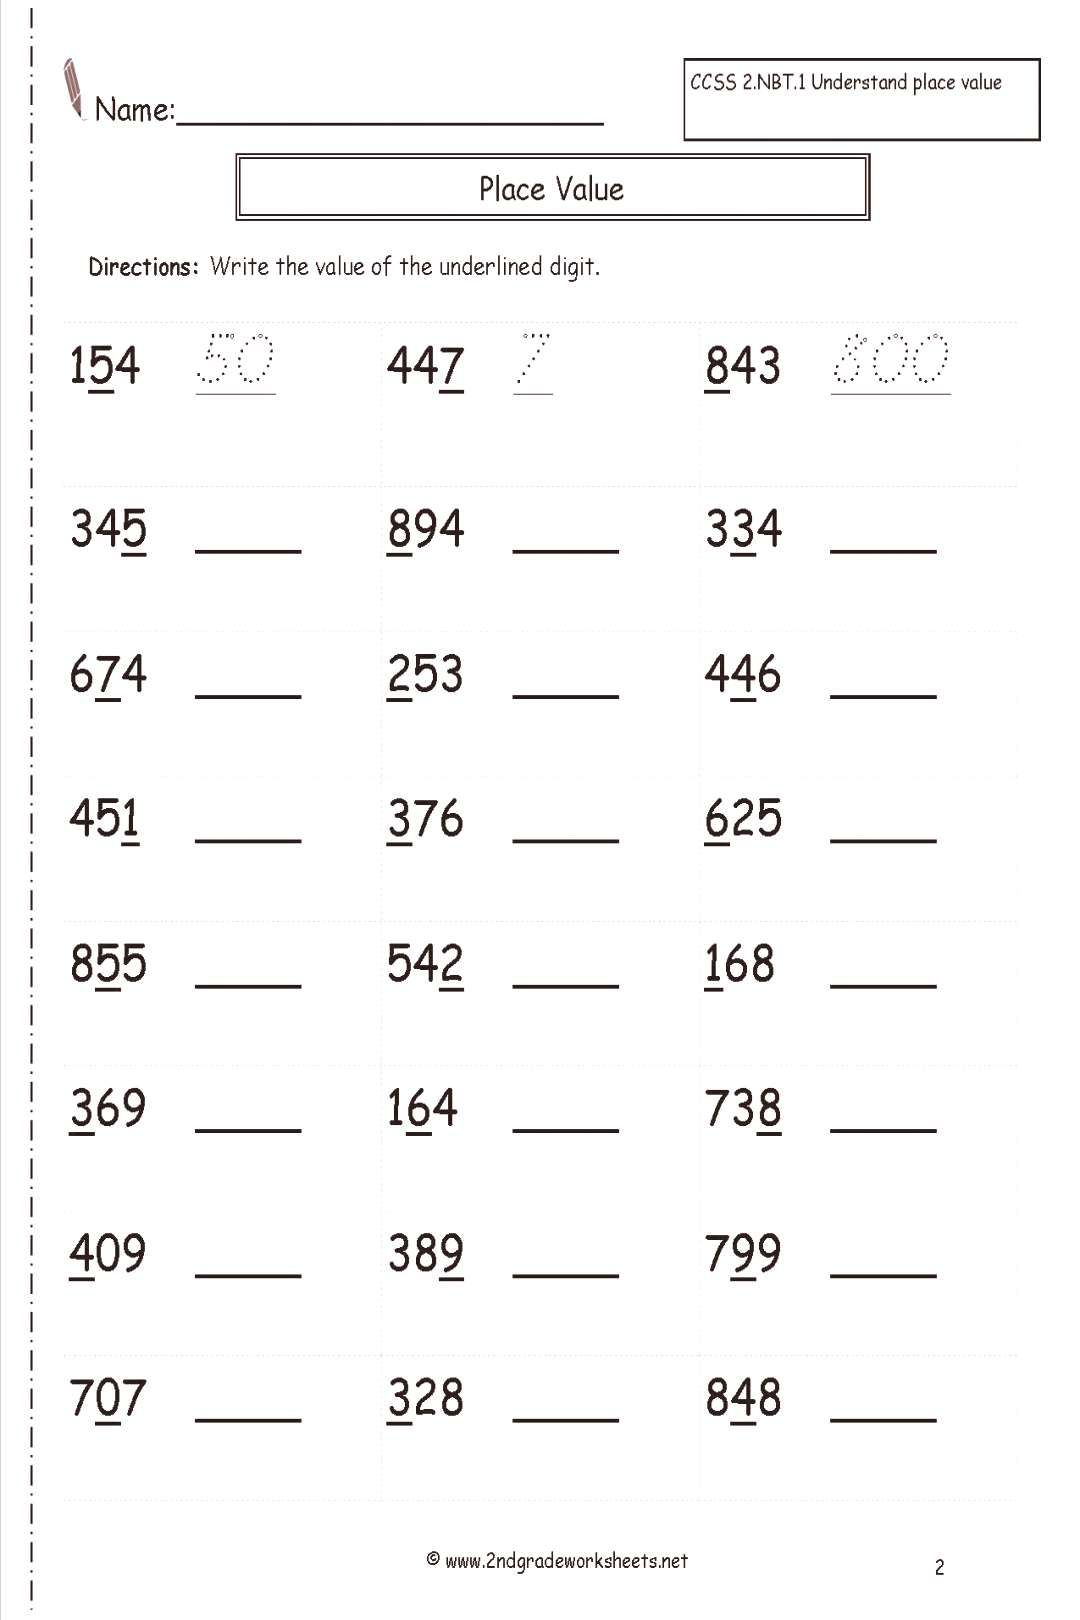 Place Value Worksheets Second Grade Worksheet Common Core Math 5th   Place  value worksheets [ 1620 x 1080 Pixel ]